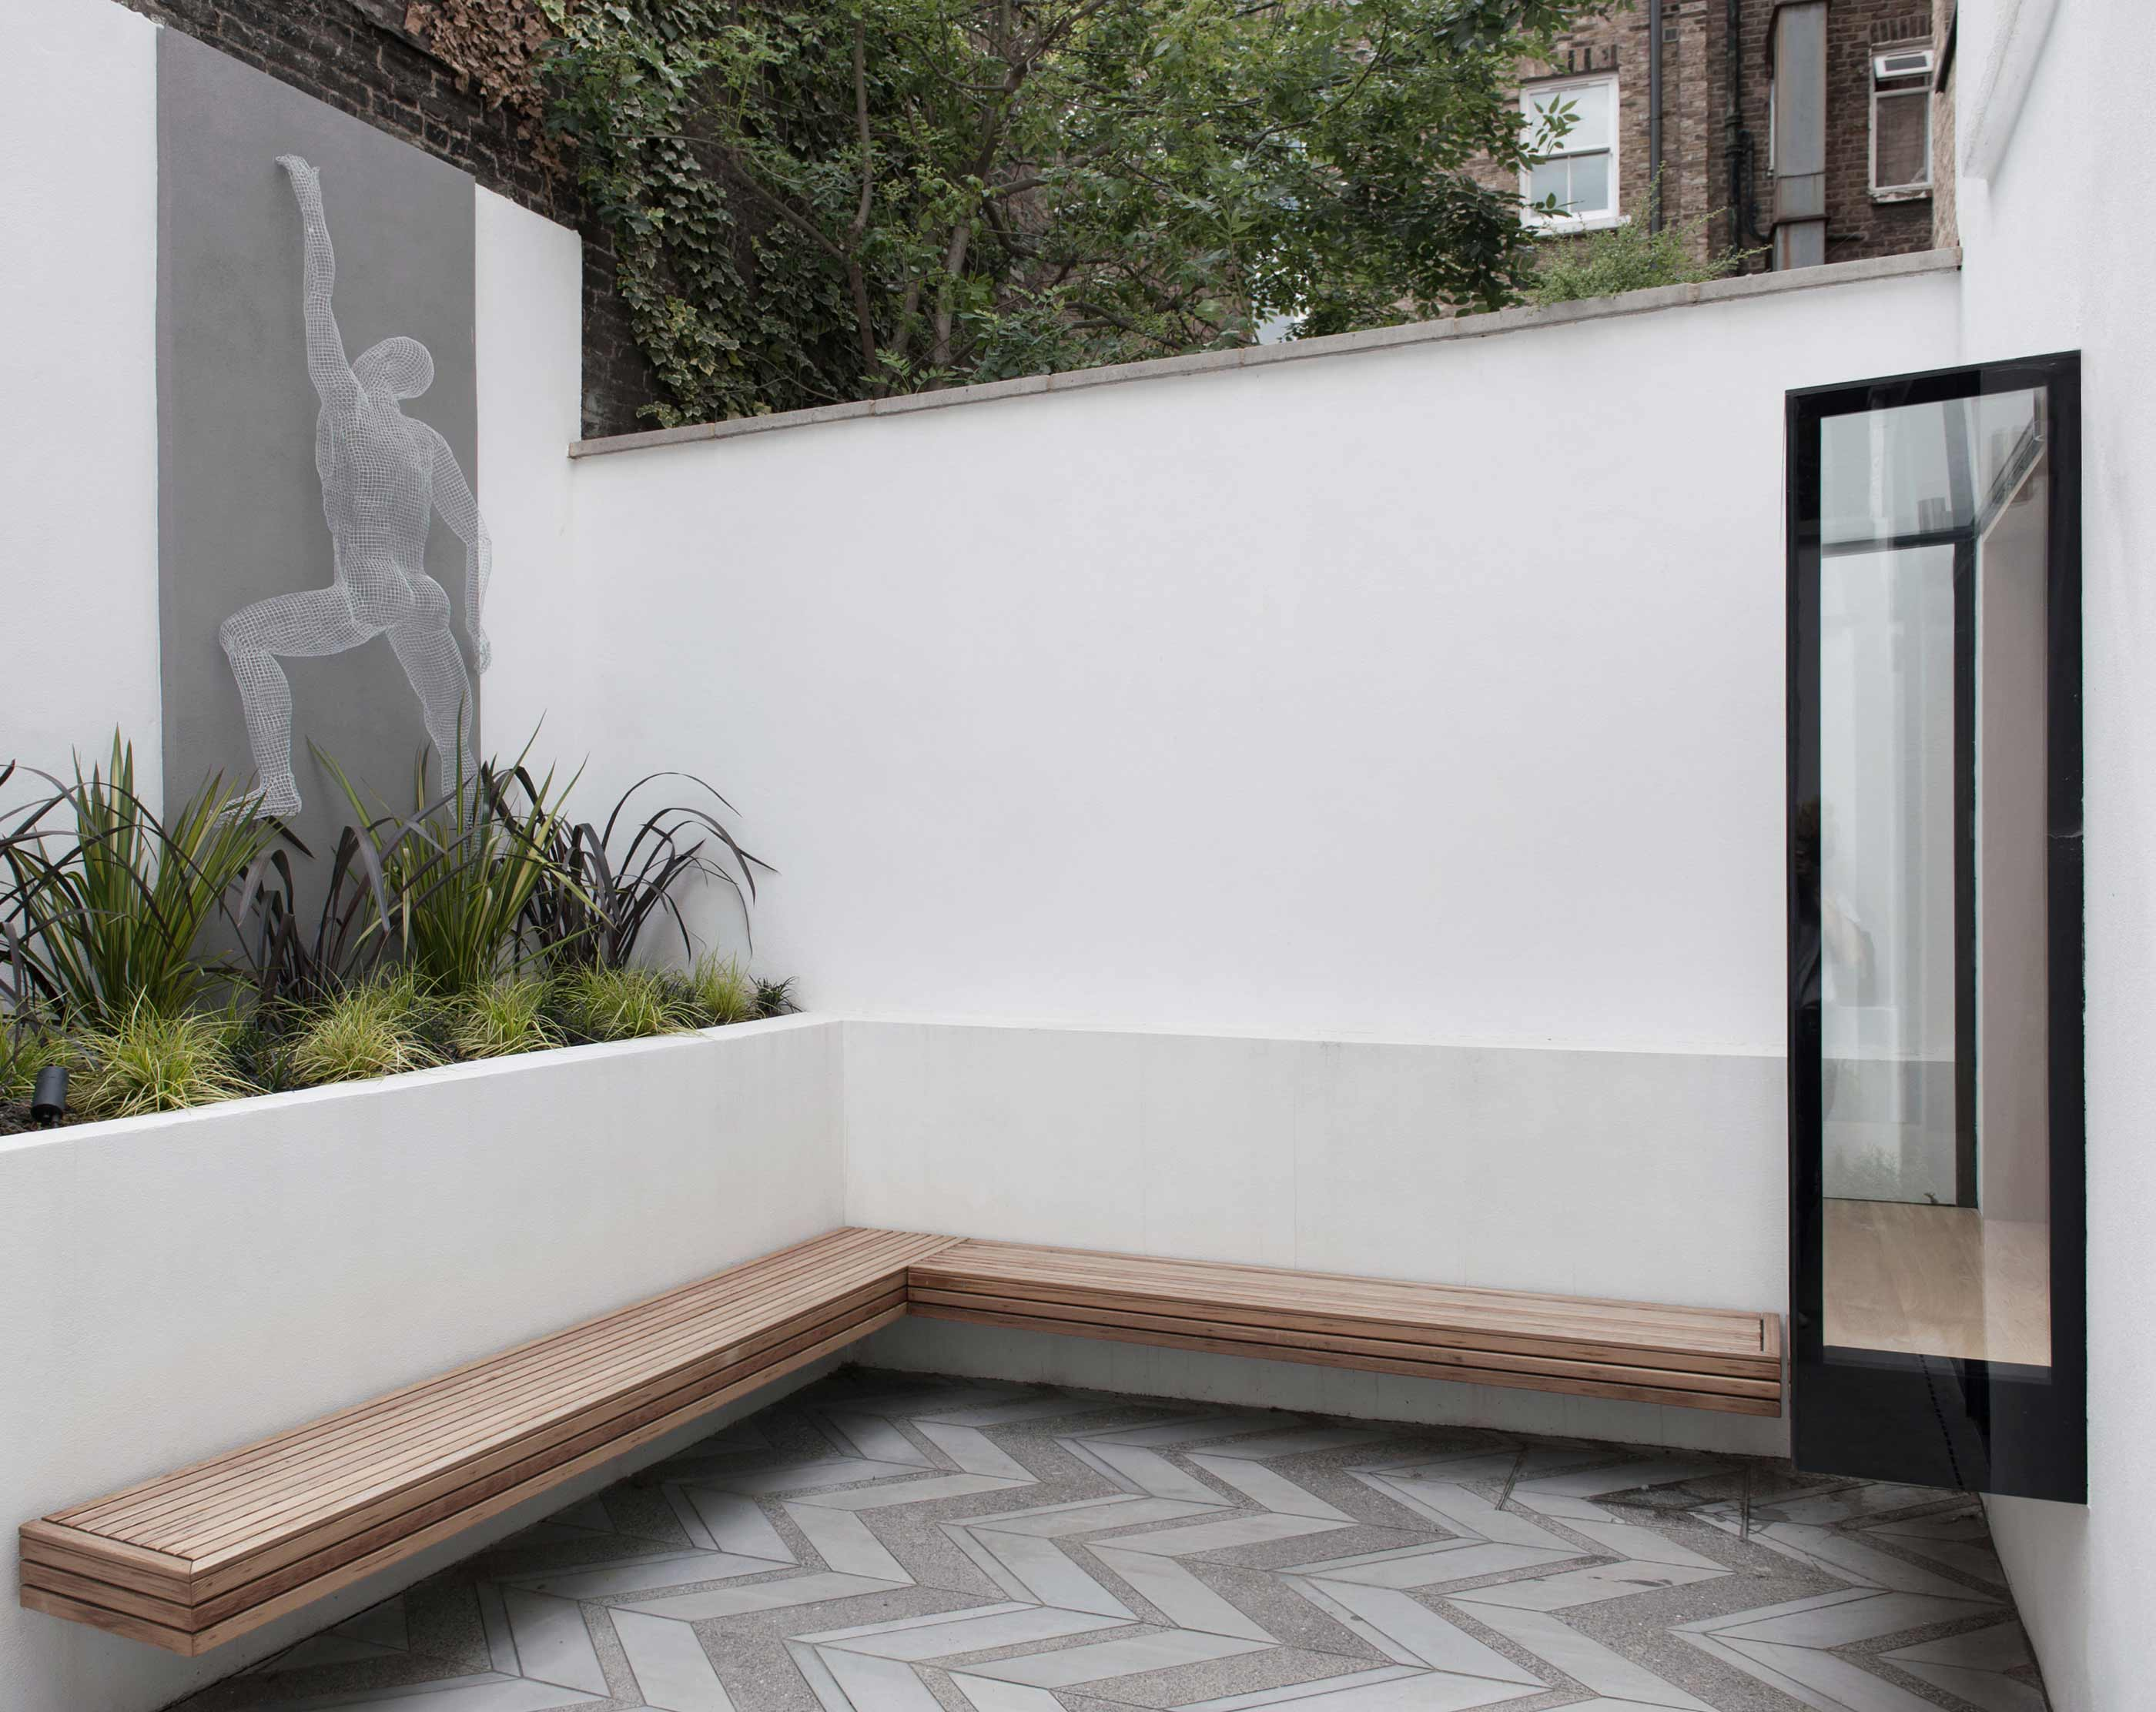 Notting Hill Westbourne Park Road garden flat extension oriel window bespoke concrete paving garden design